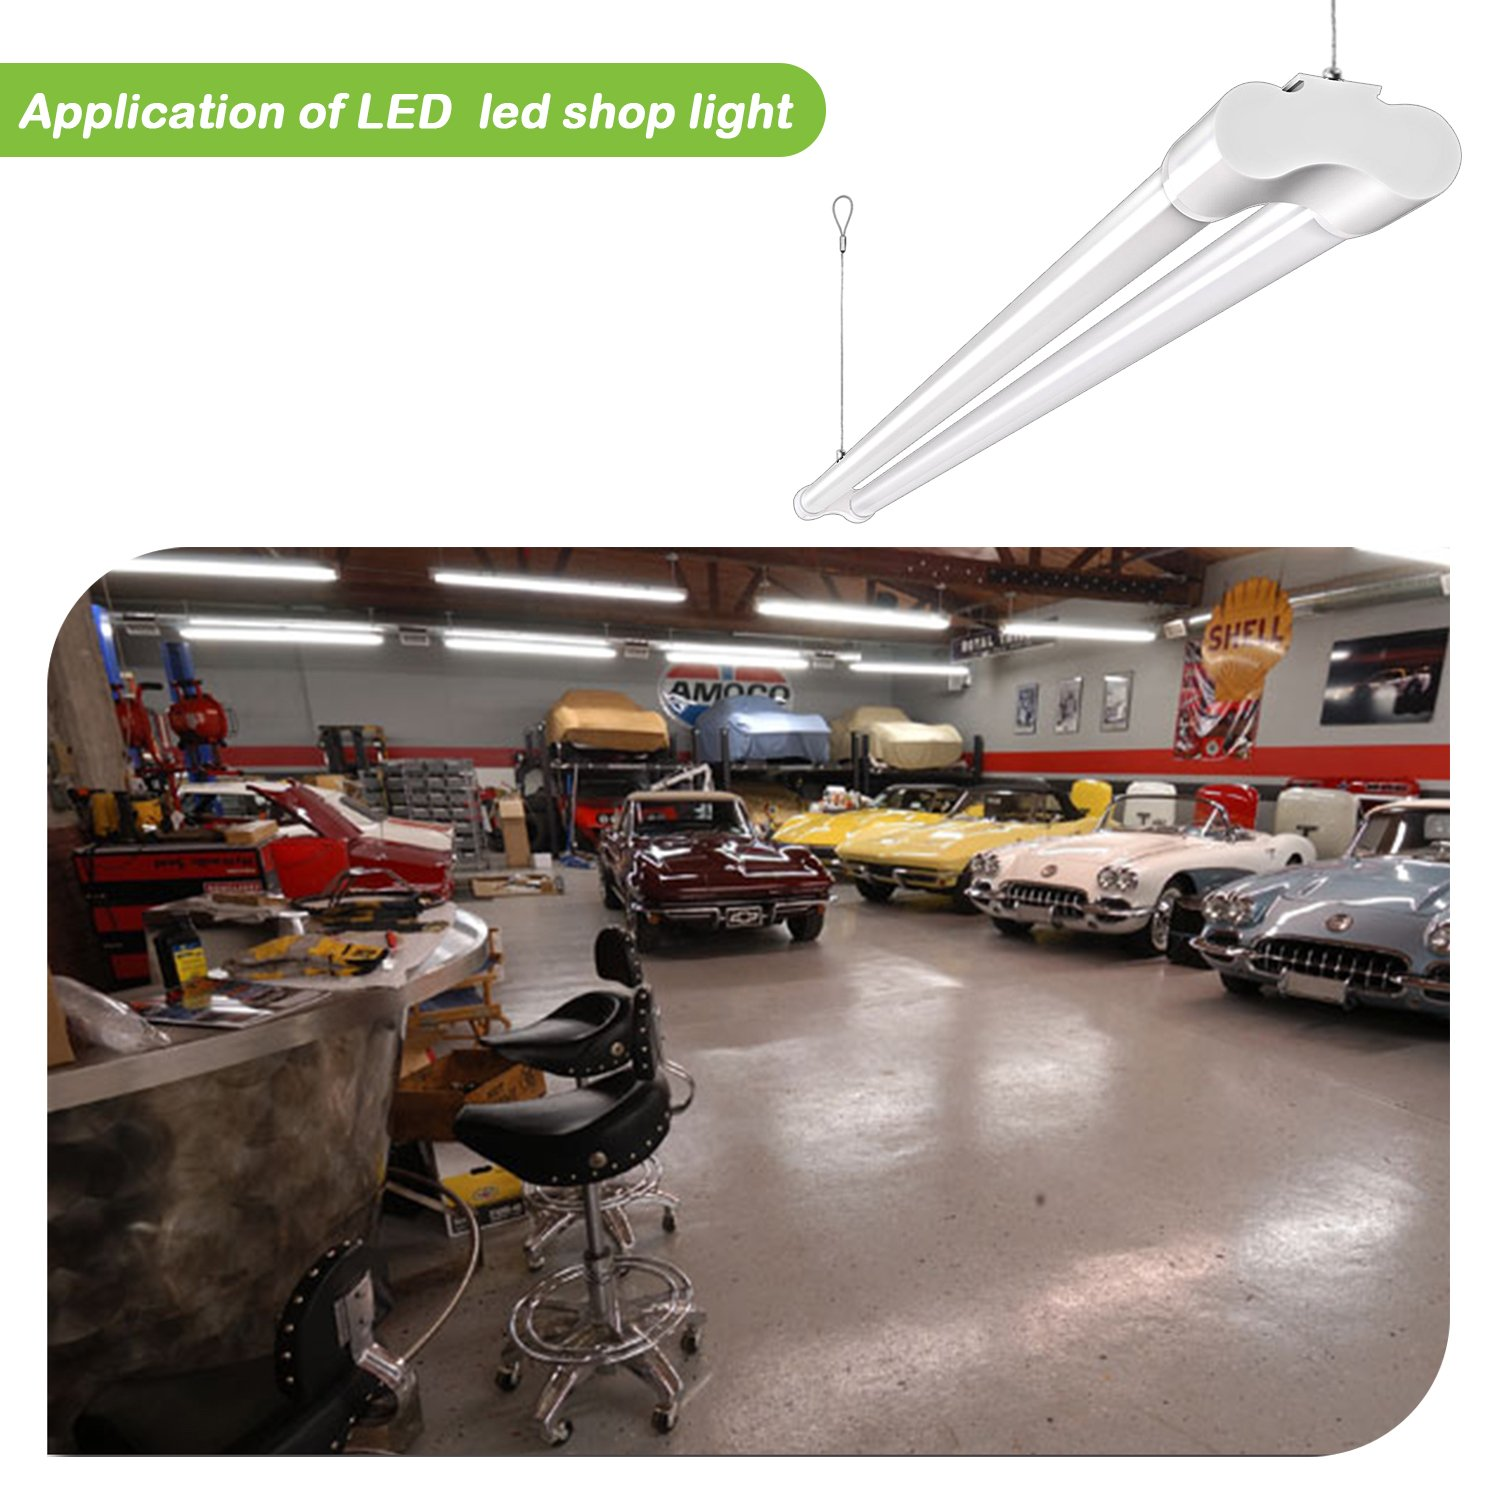 Hykolity 4FT 36W LED Shop Light with cord, 3600lm Hanging or FlushMount Garage Utility Light, 5000K Overhead Workbench Light, Light Weight, Shatter Proof 64w Fluorescent Fixture Replacement- 4 Pack by hykolity (Image #8)